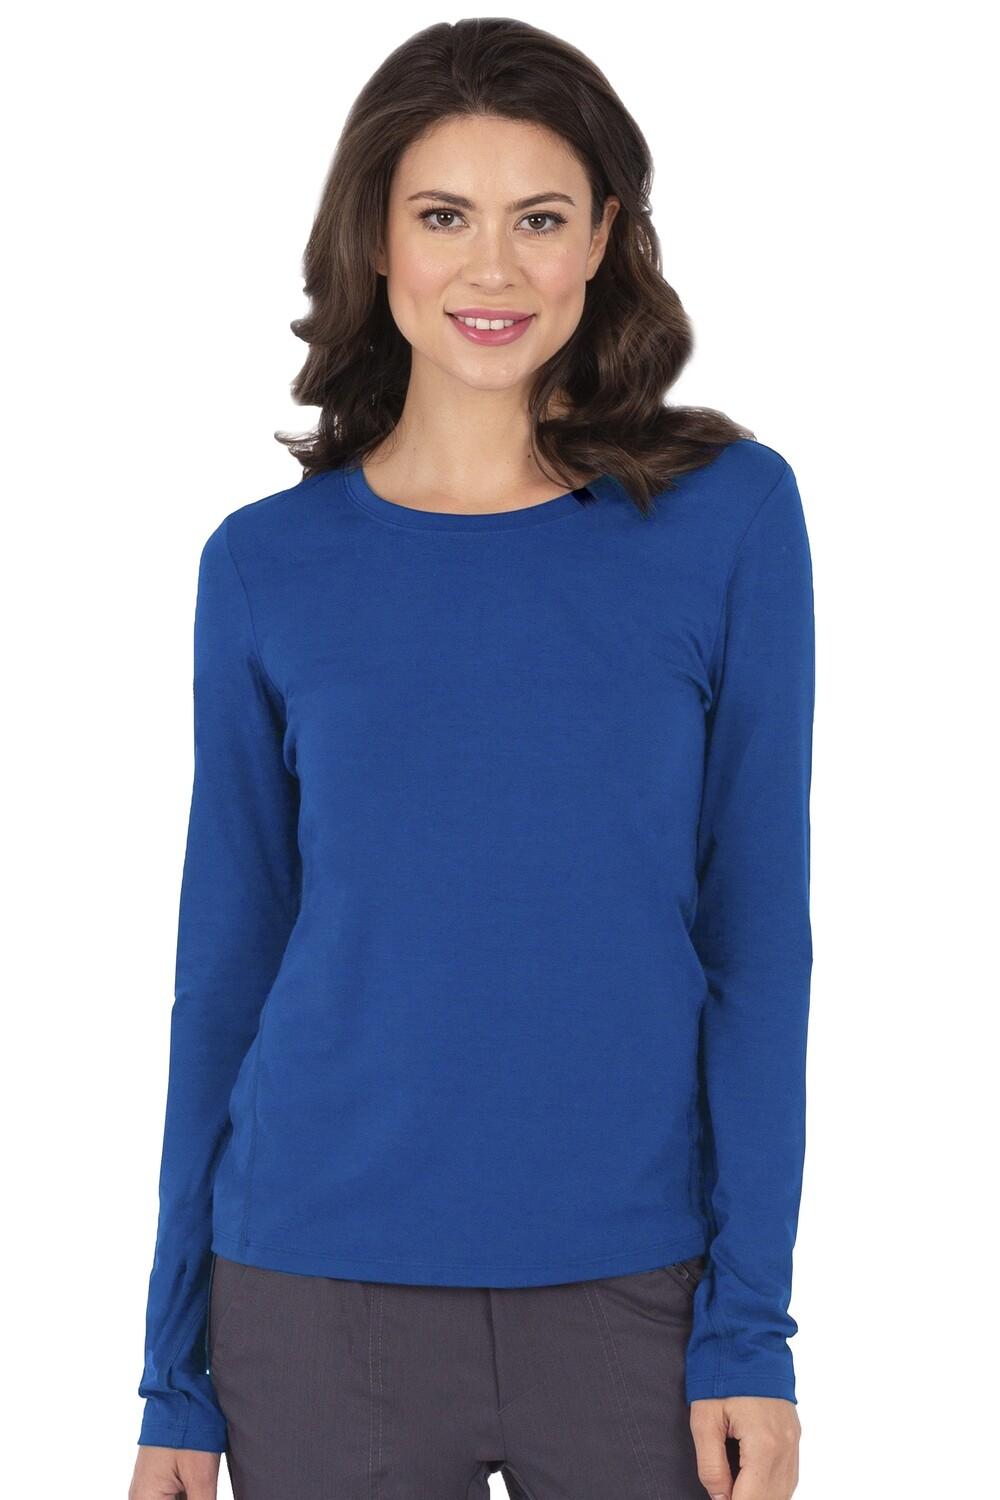 5051 MACKENZIE TEE XS ROYAL BLUE